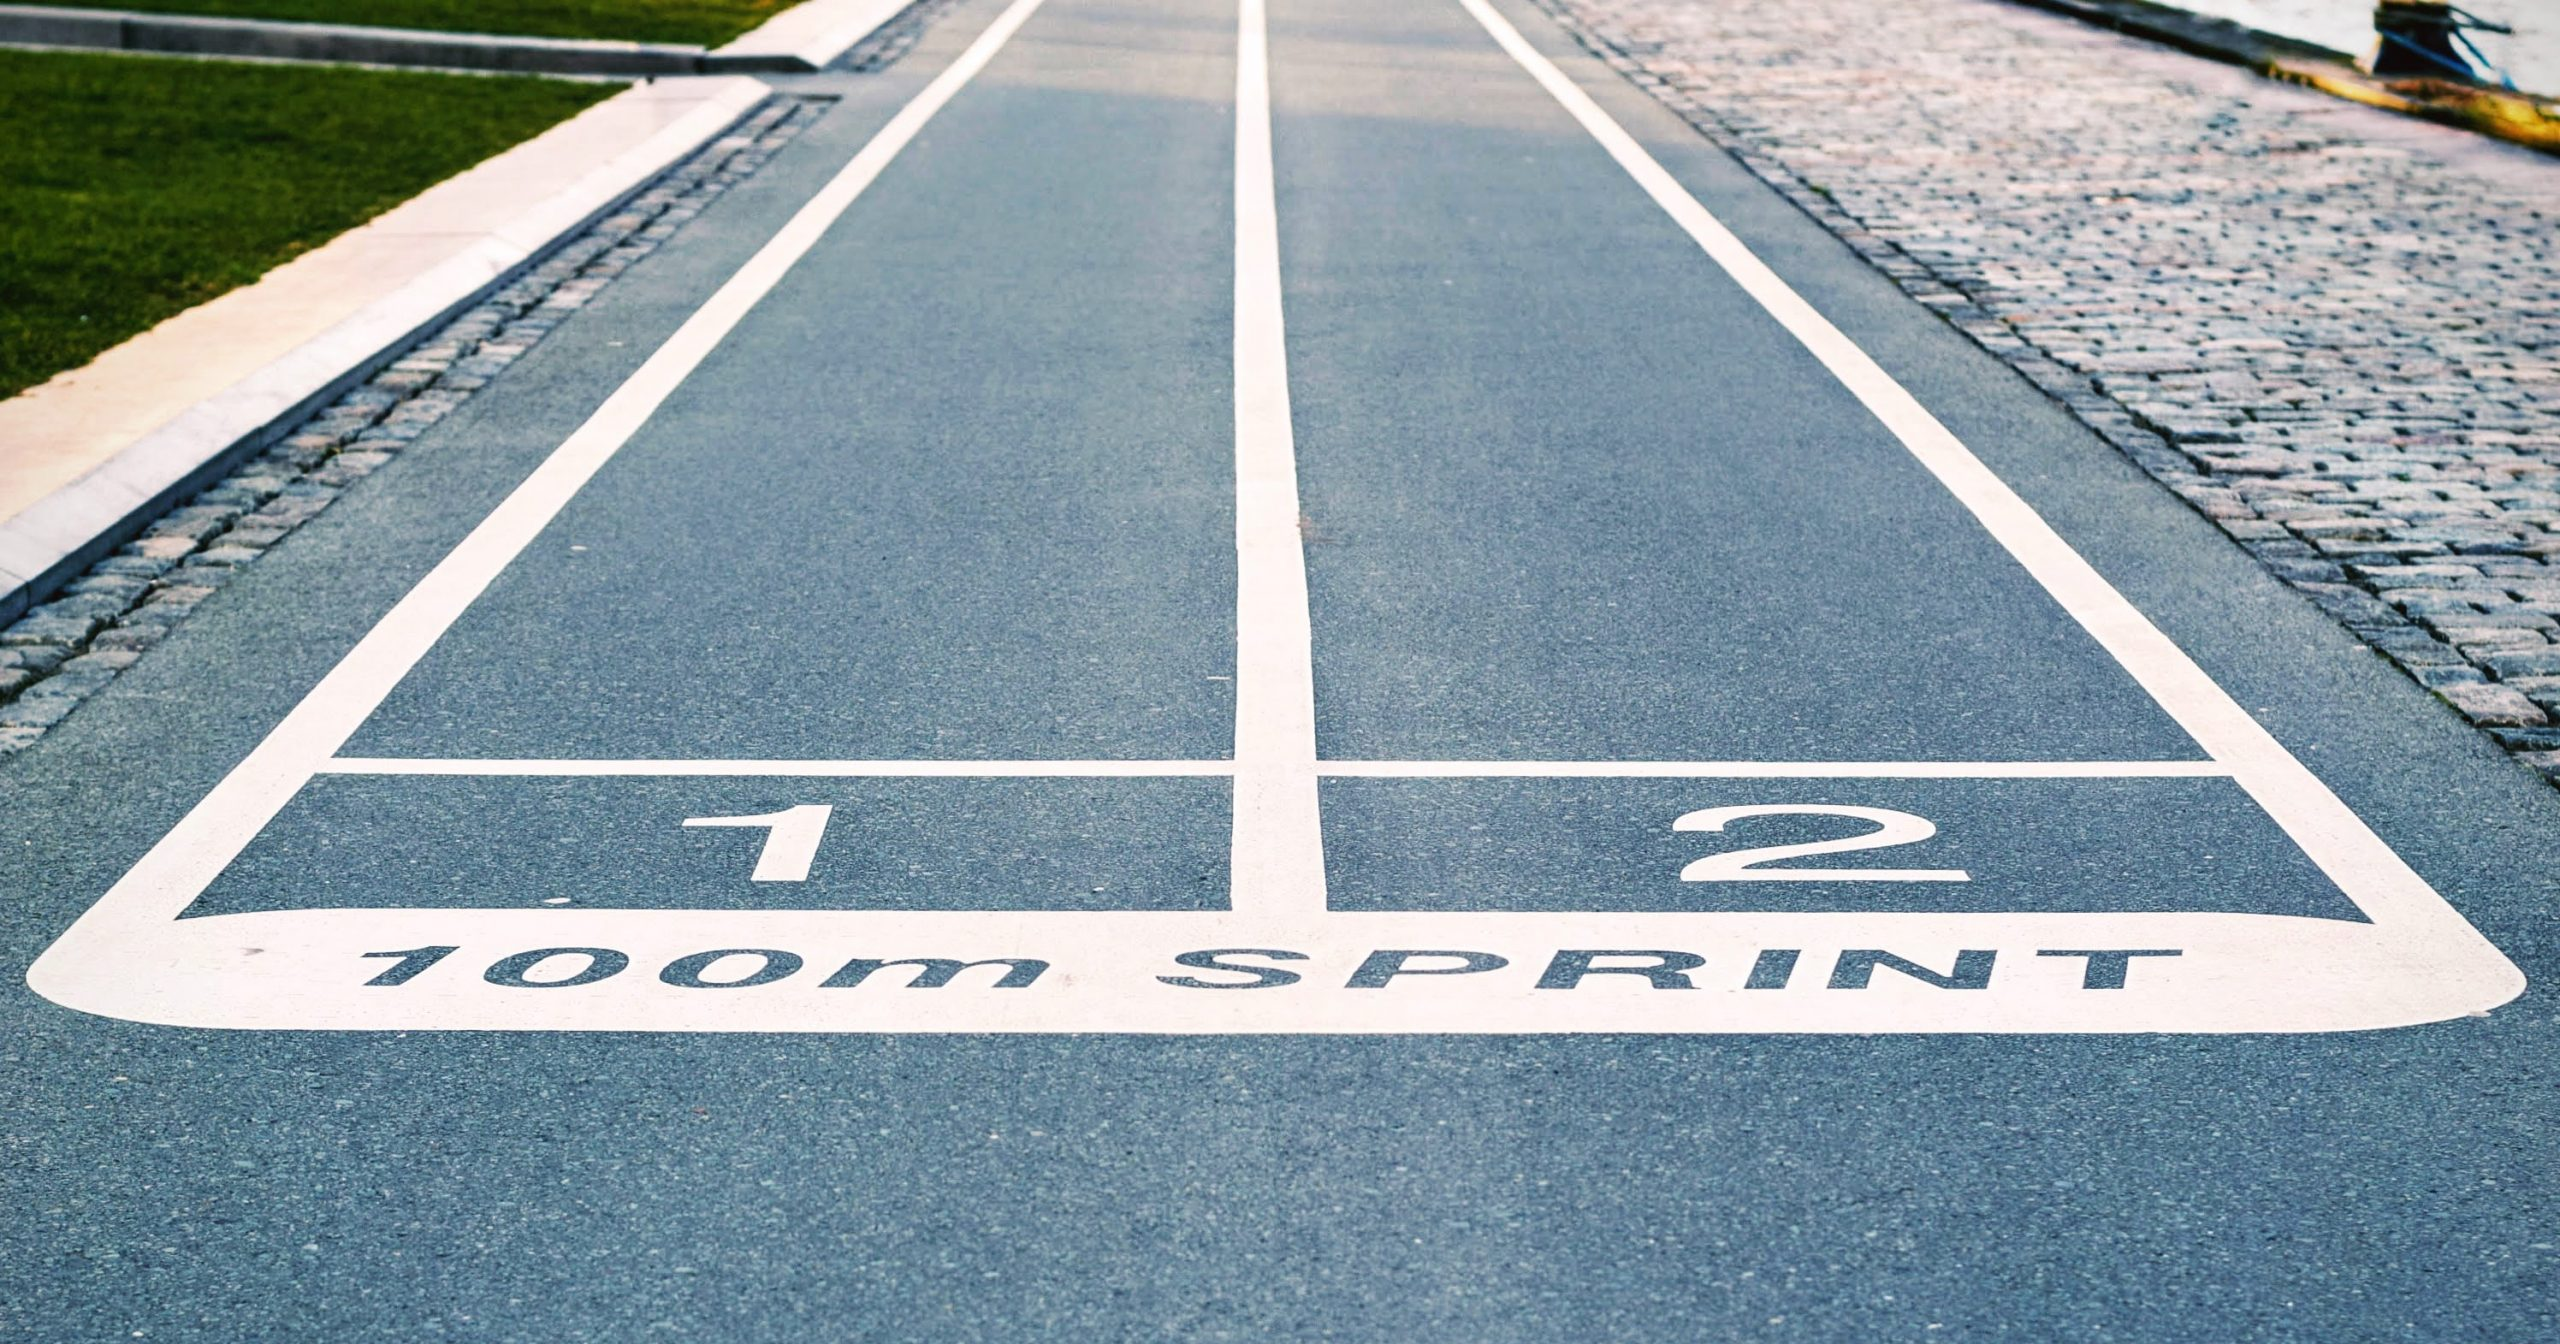 """A road with two designated lanes, labelled 1 and 2, for racing with the words """"100m Sprint"""""""